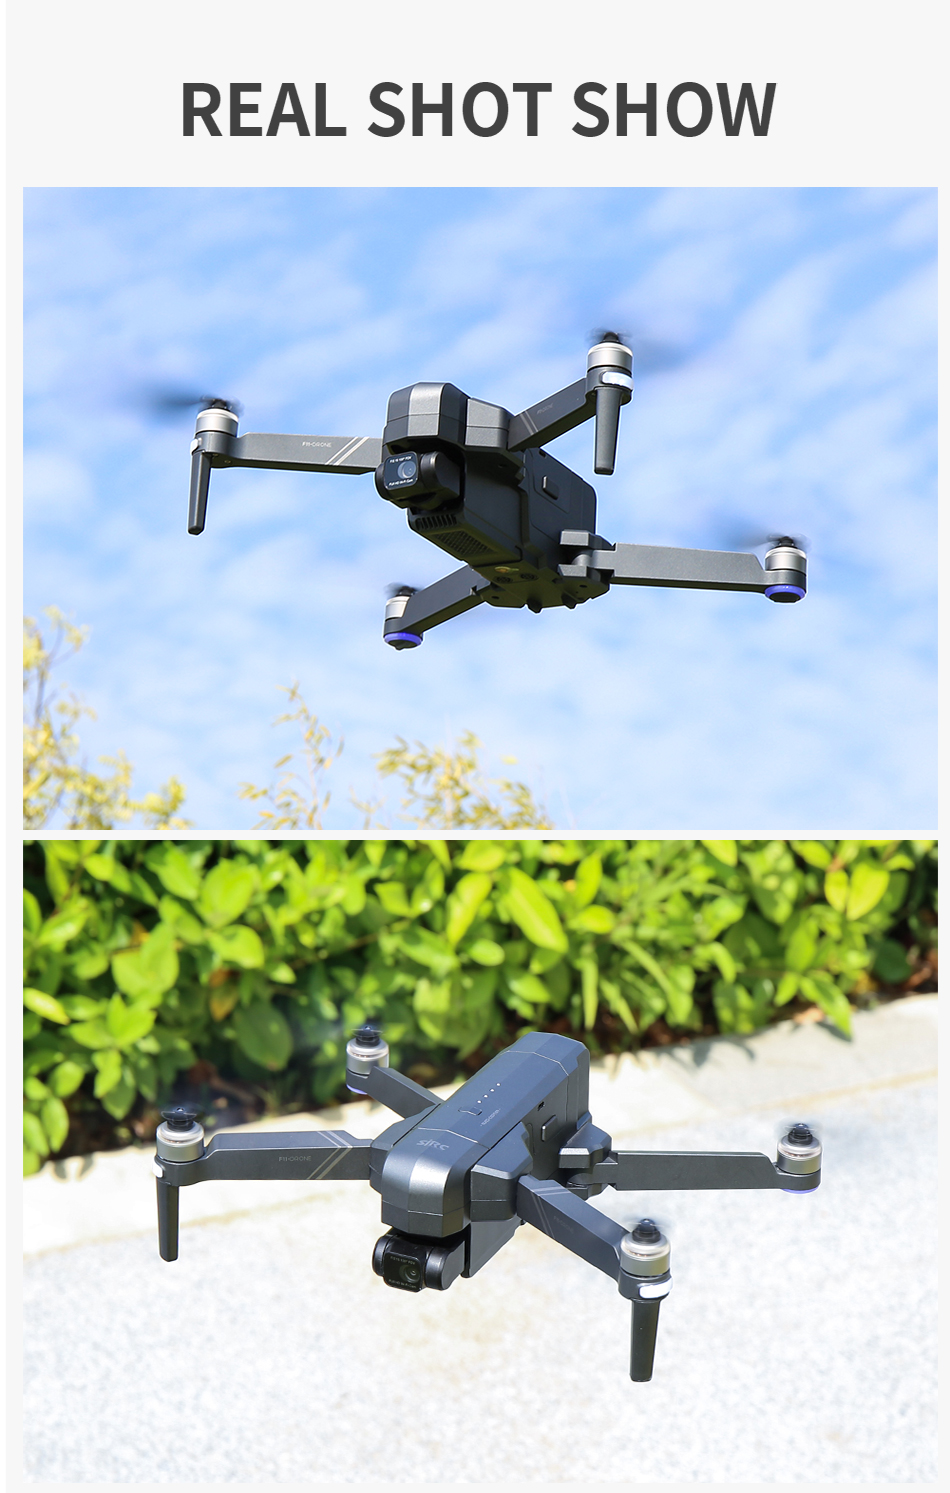 H6b4a483a4eec40938fbef065d74b458fG - SJRC F11 Pro 4K F11s Pro 2.5K Camera Drone GPS 5G FPV HD 2 Axis Stabilized Gimbal EIS Professional Brushless Quadcopter RC Dron